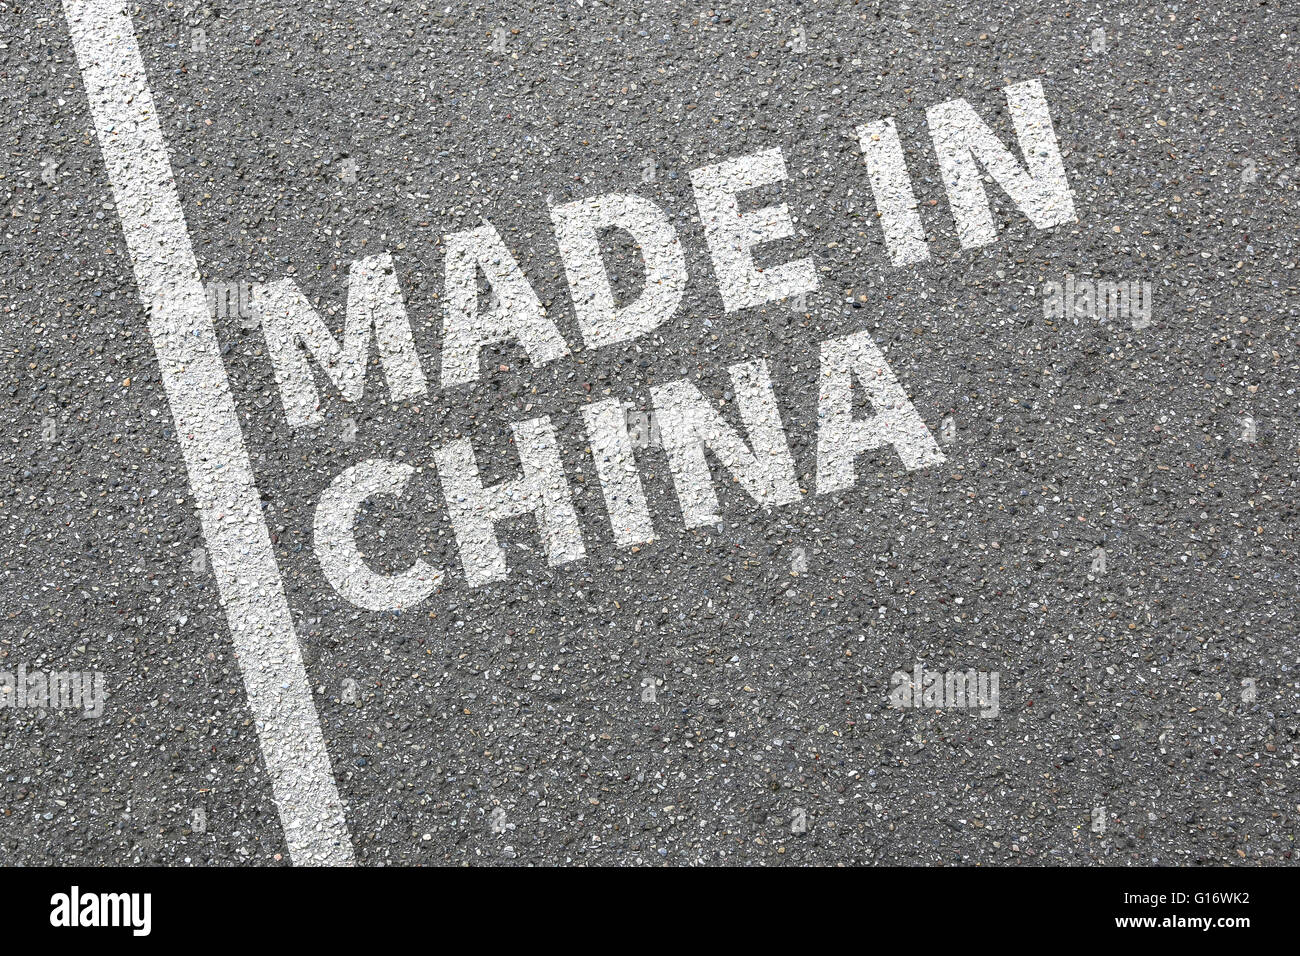 Made in China product quality marketing company concept - Stock Image